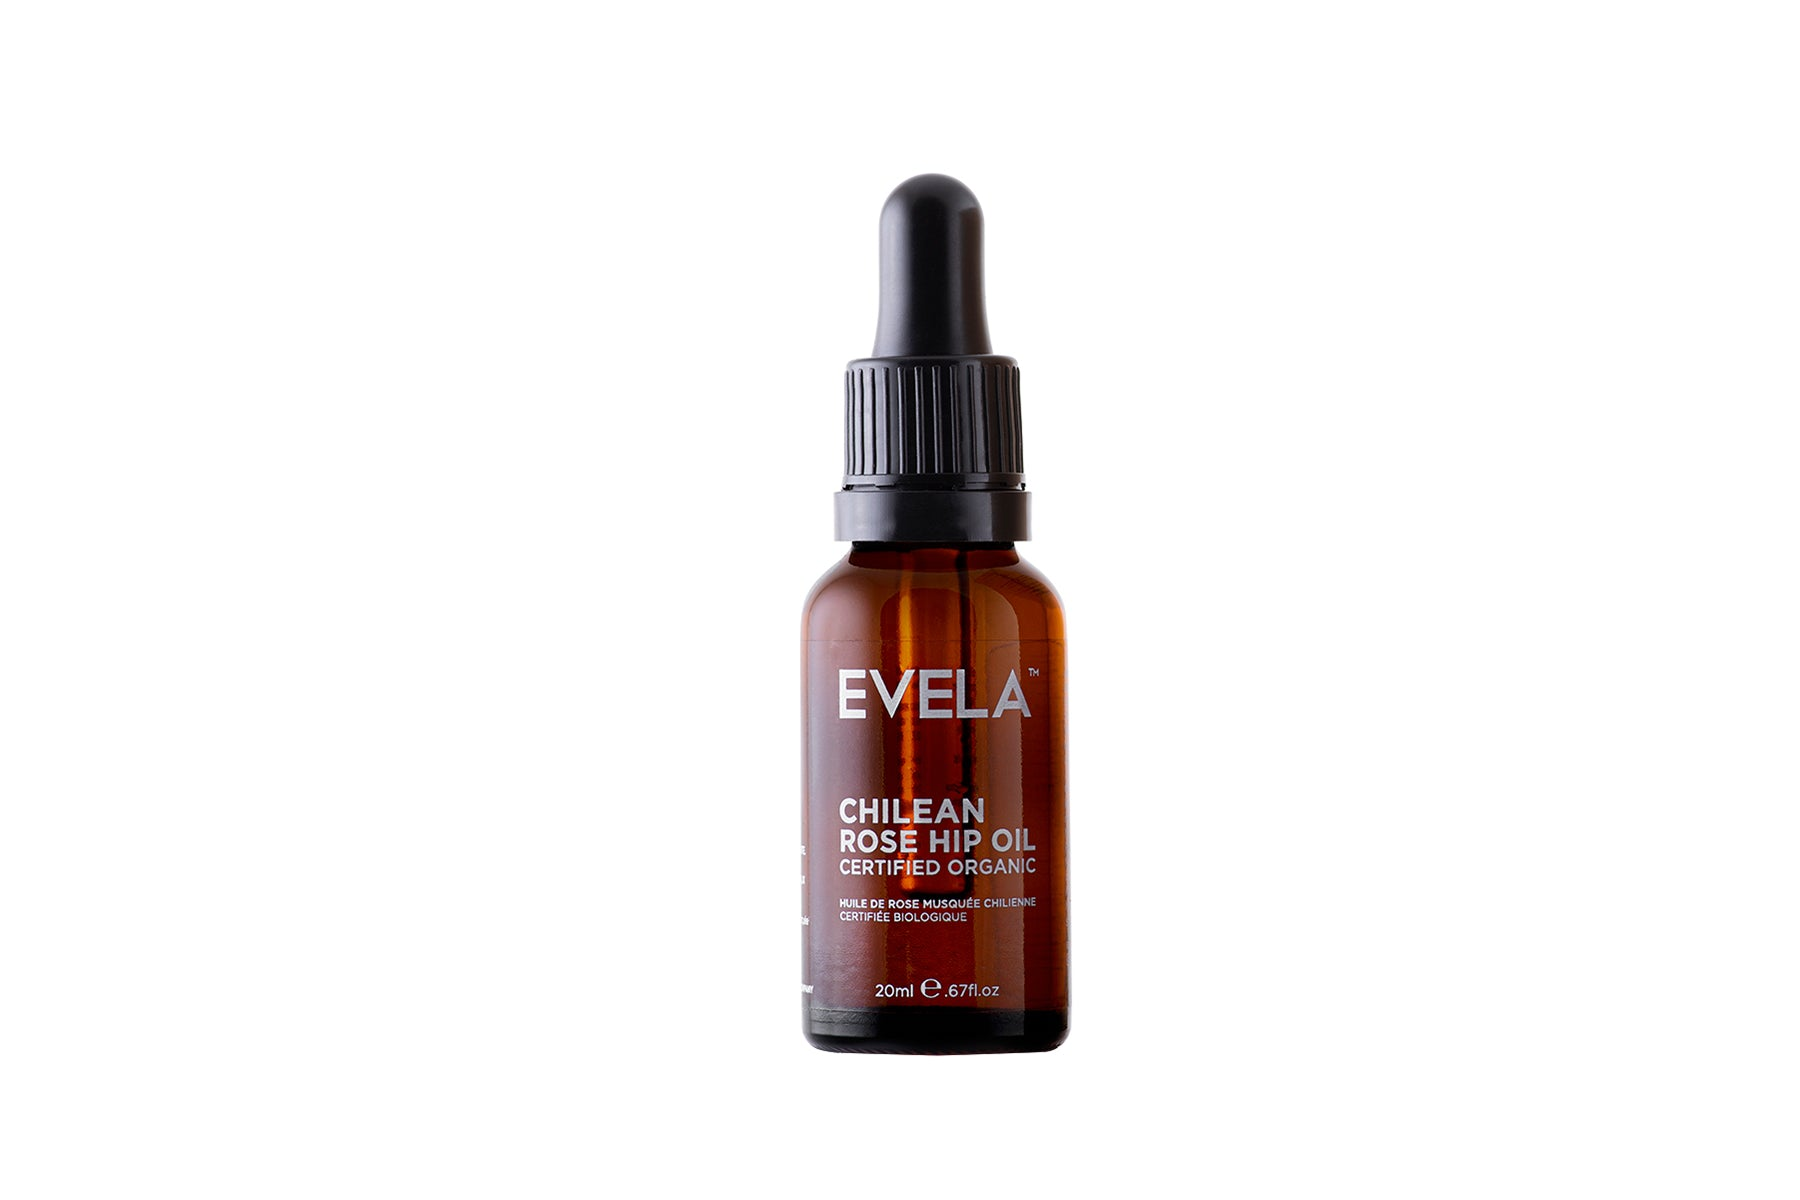 CHILEAN ROSE HIP OIL 20ml - EVELA